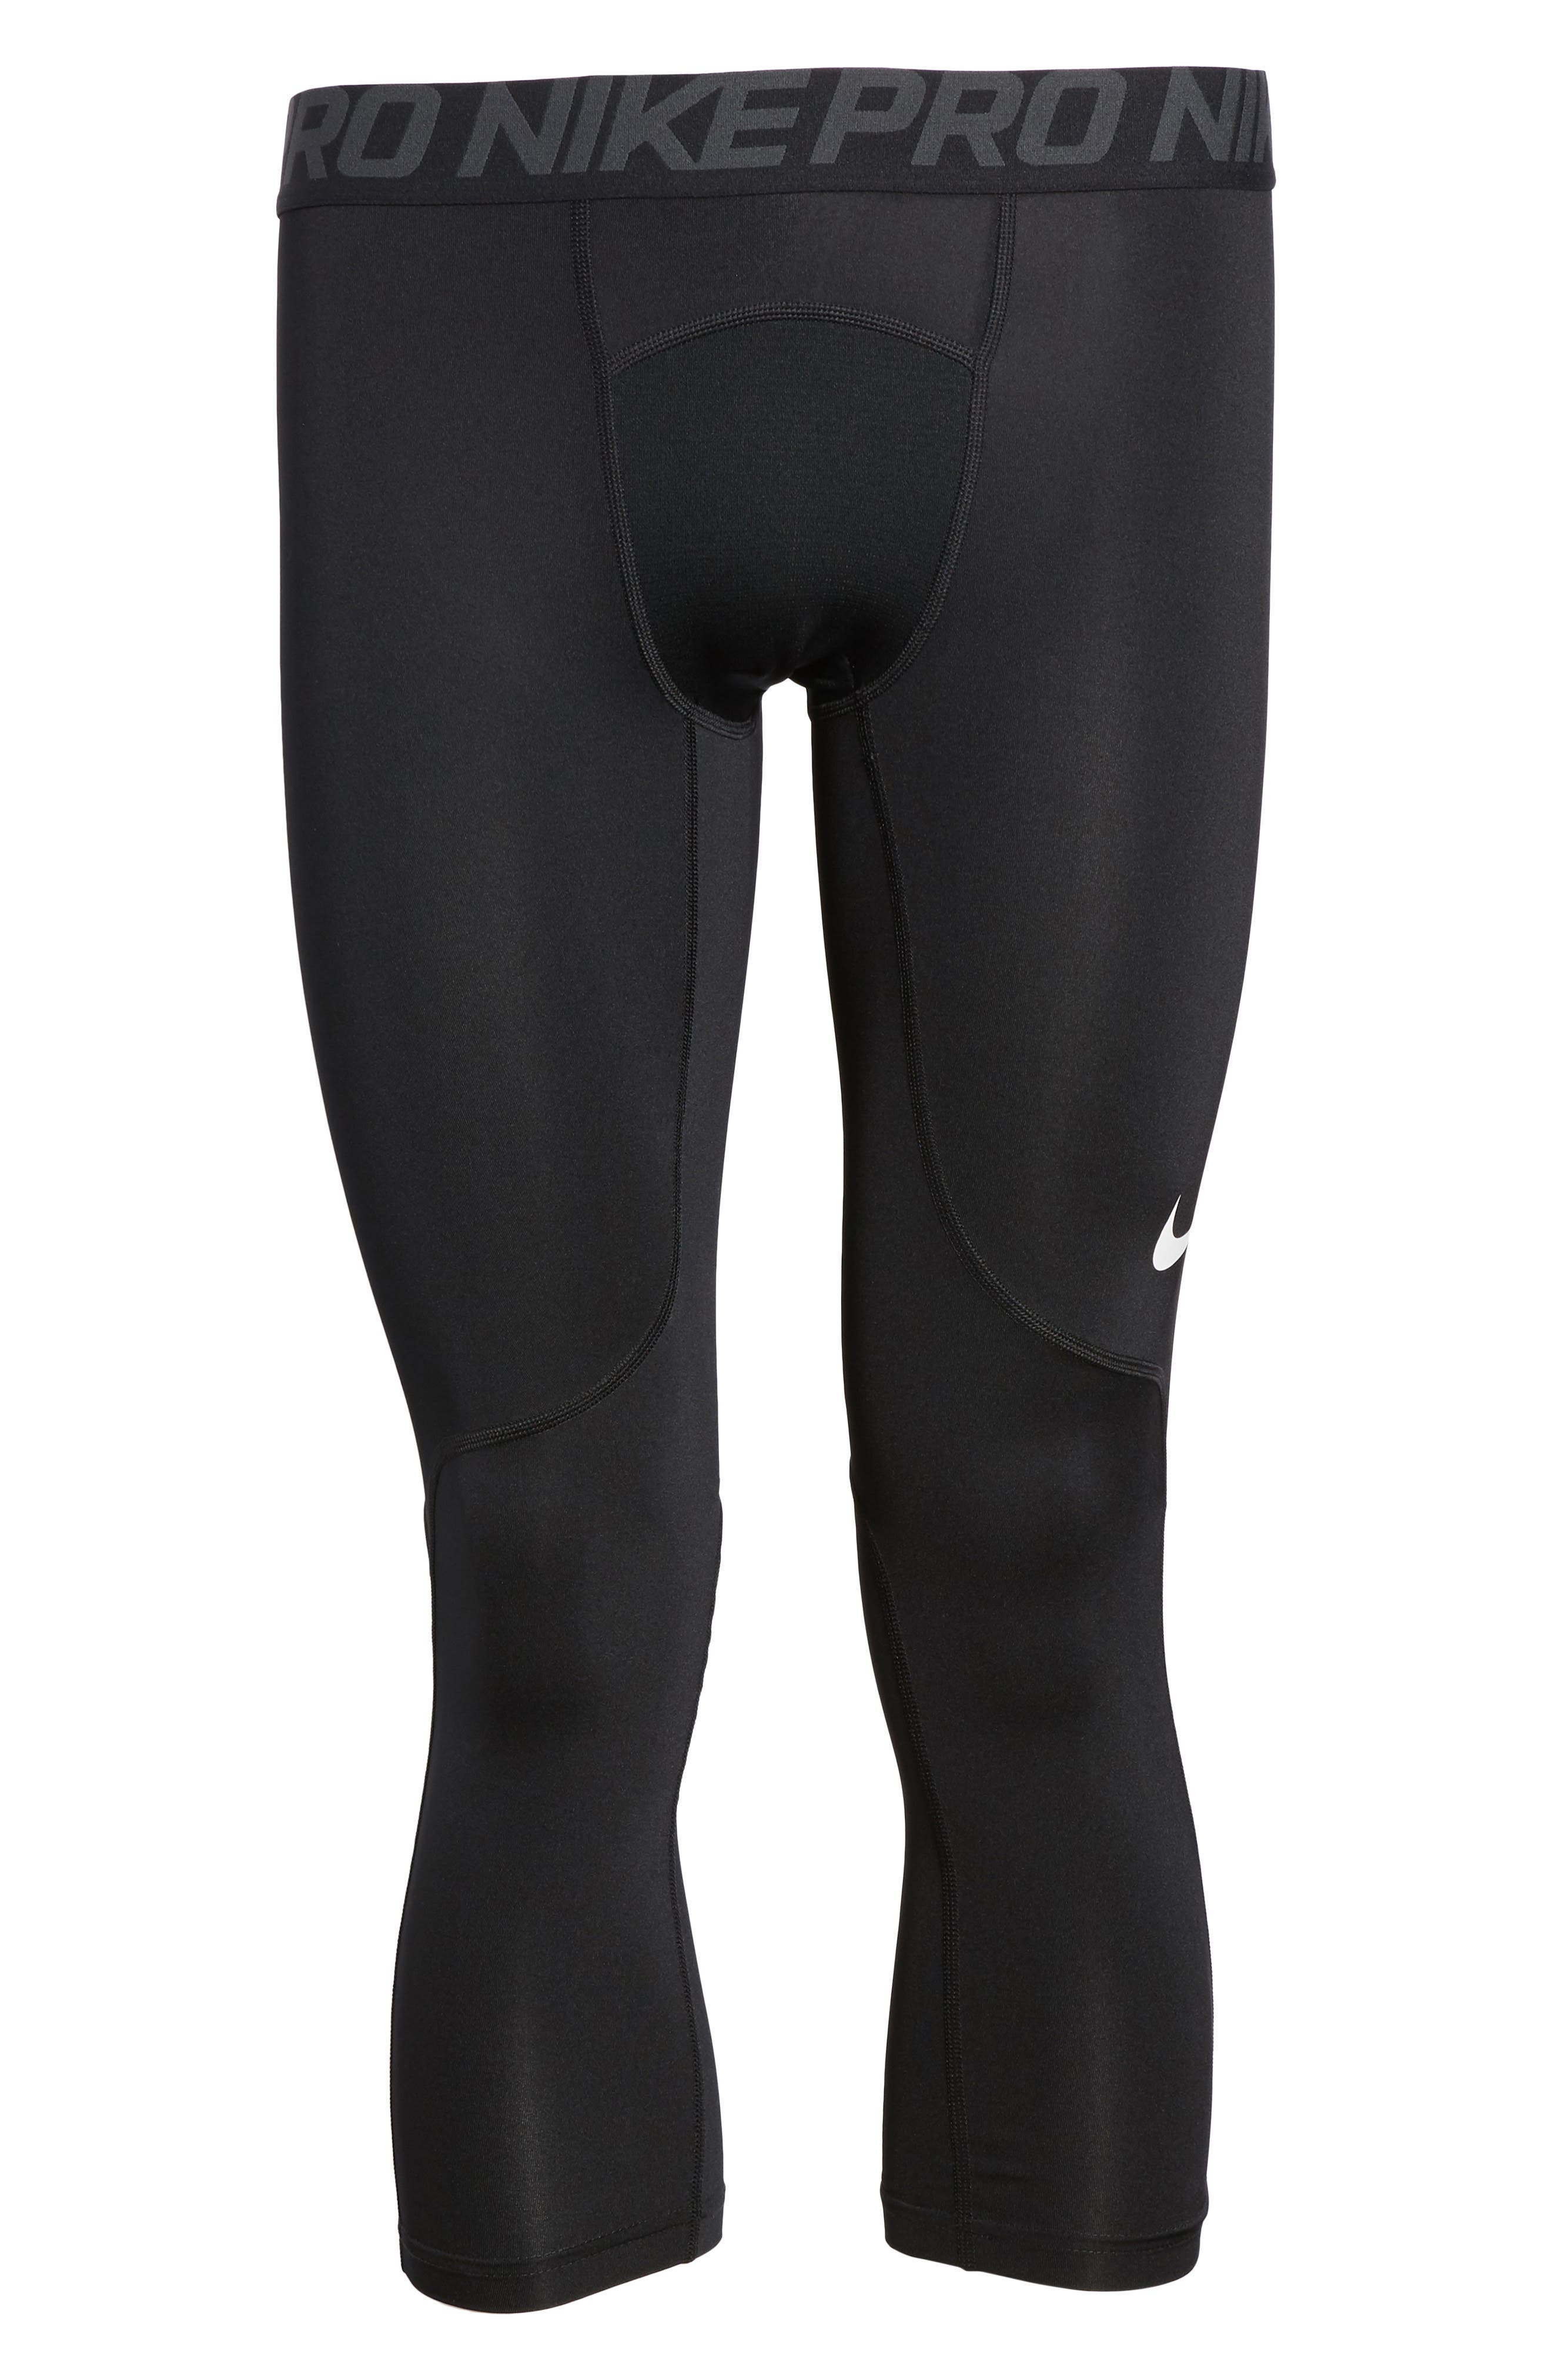 Pro Three Quarter Training Tights,                             Alternate thumbnail 6, color,                             BLACK/ ANTHRACITE/ WHITE